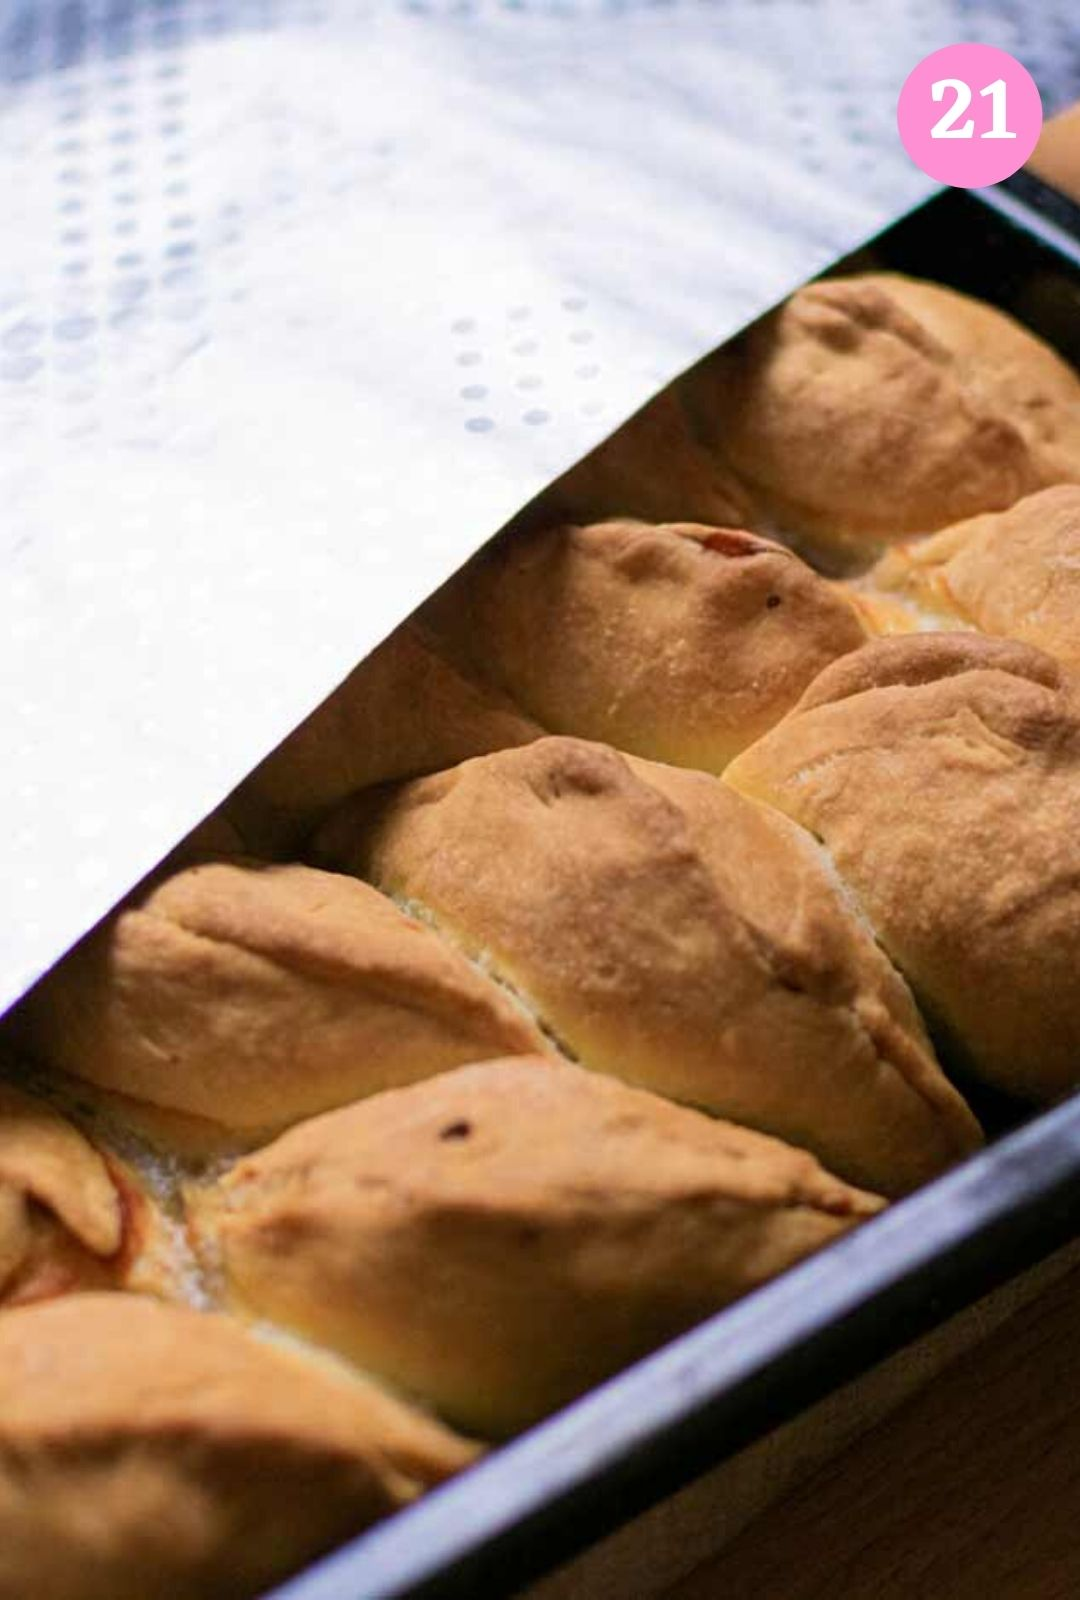 Cover meat hand pies with aluminium foil after baking